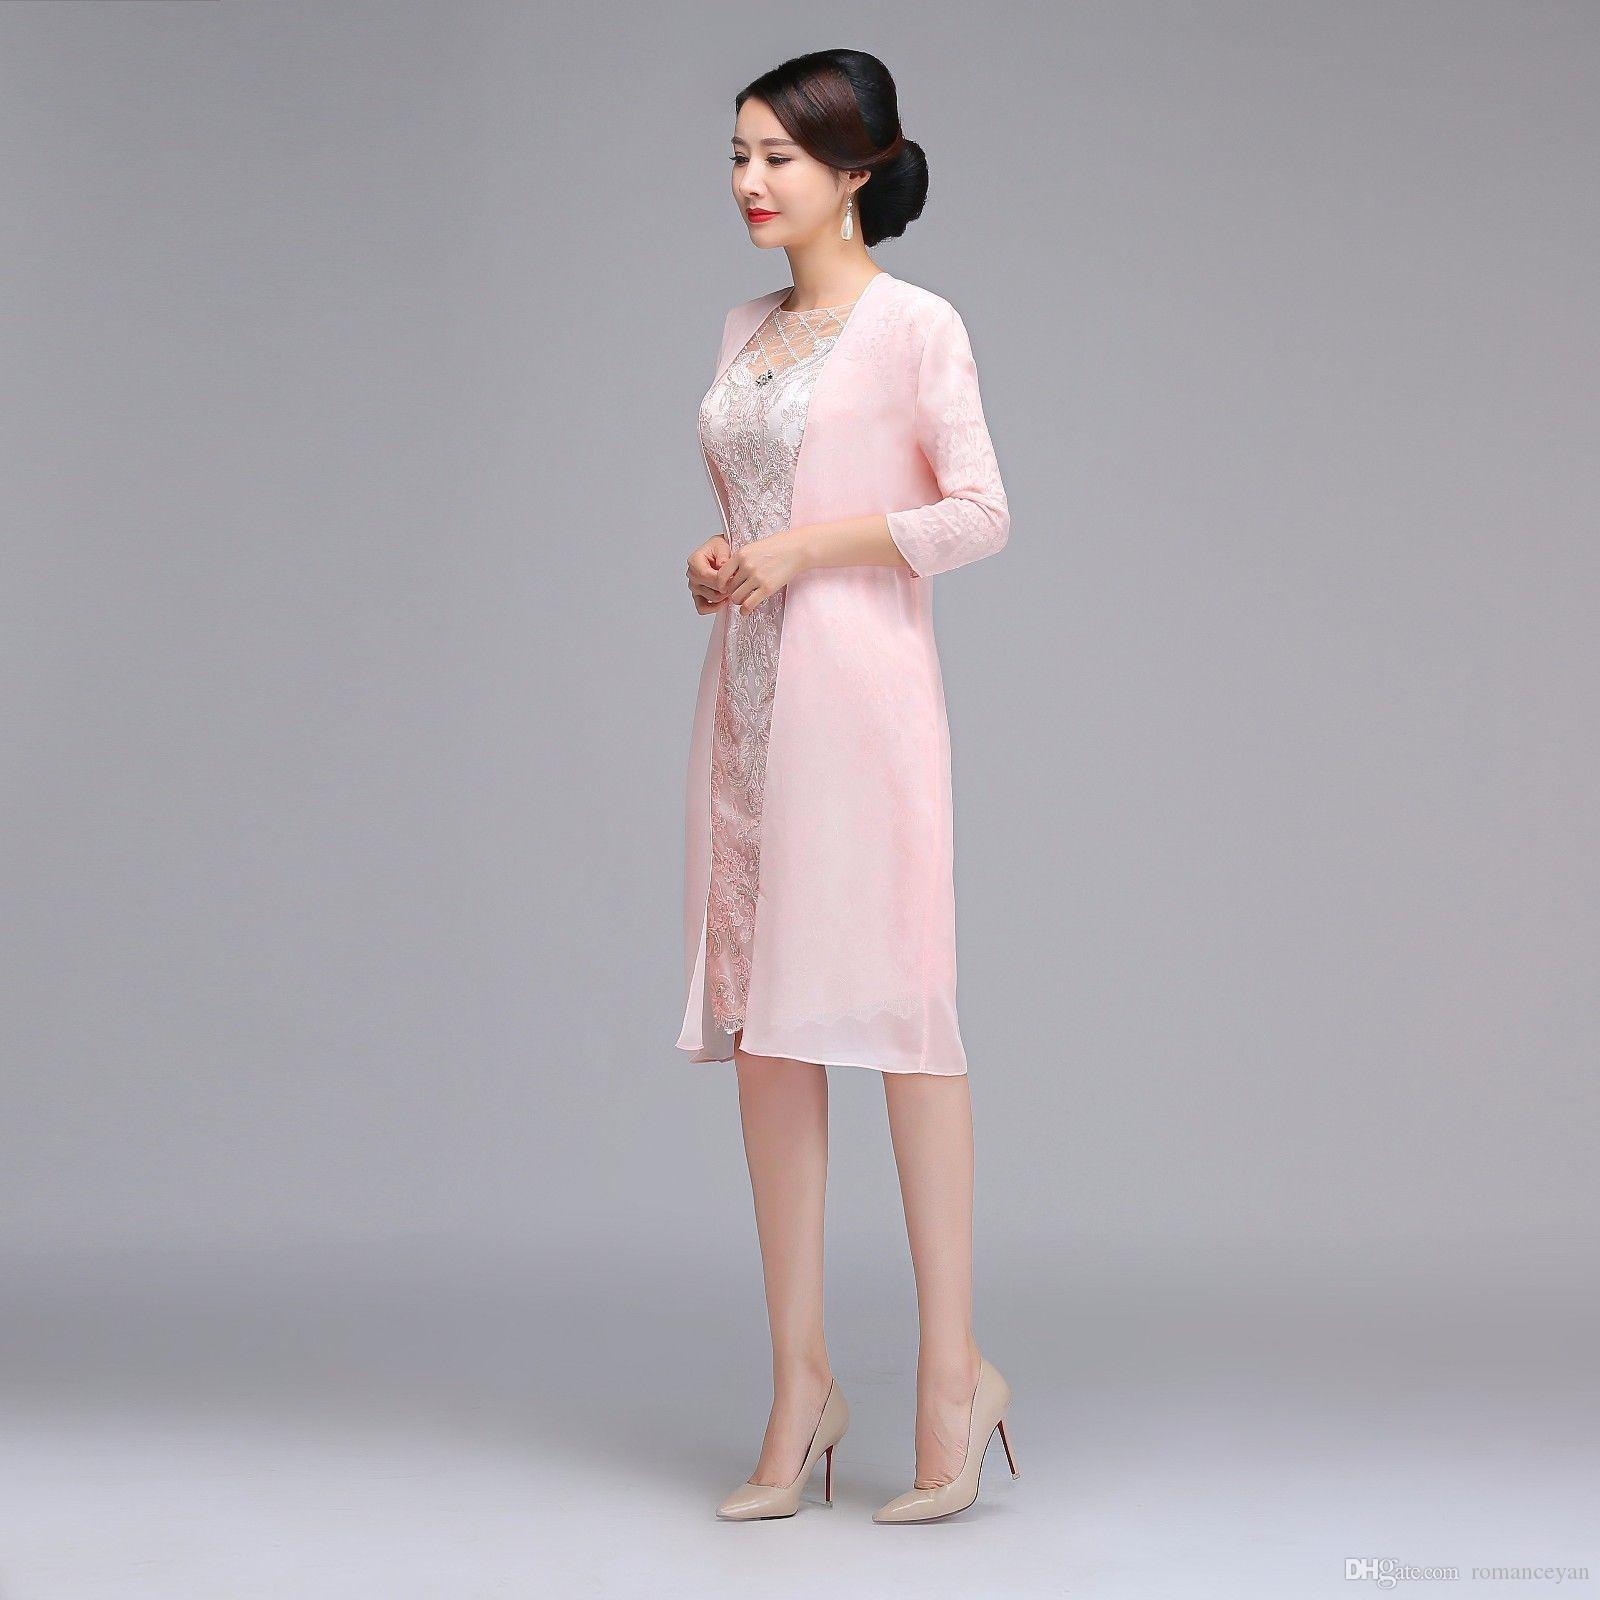 Knee Length Elegant Mother Of The Bride Dress With Long Jacket Party Dress Gown